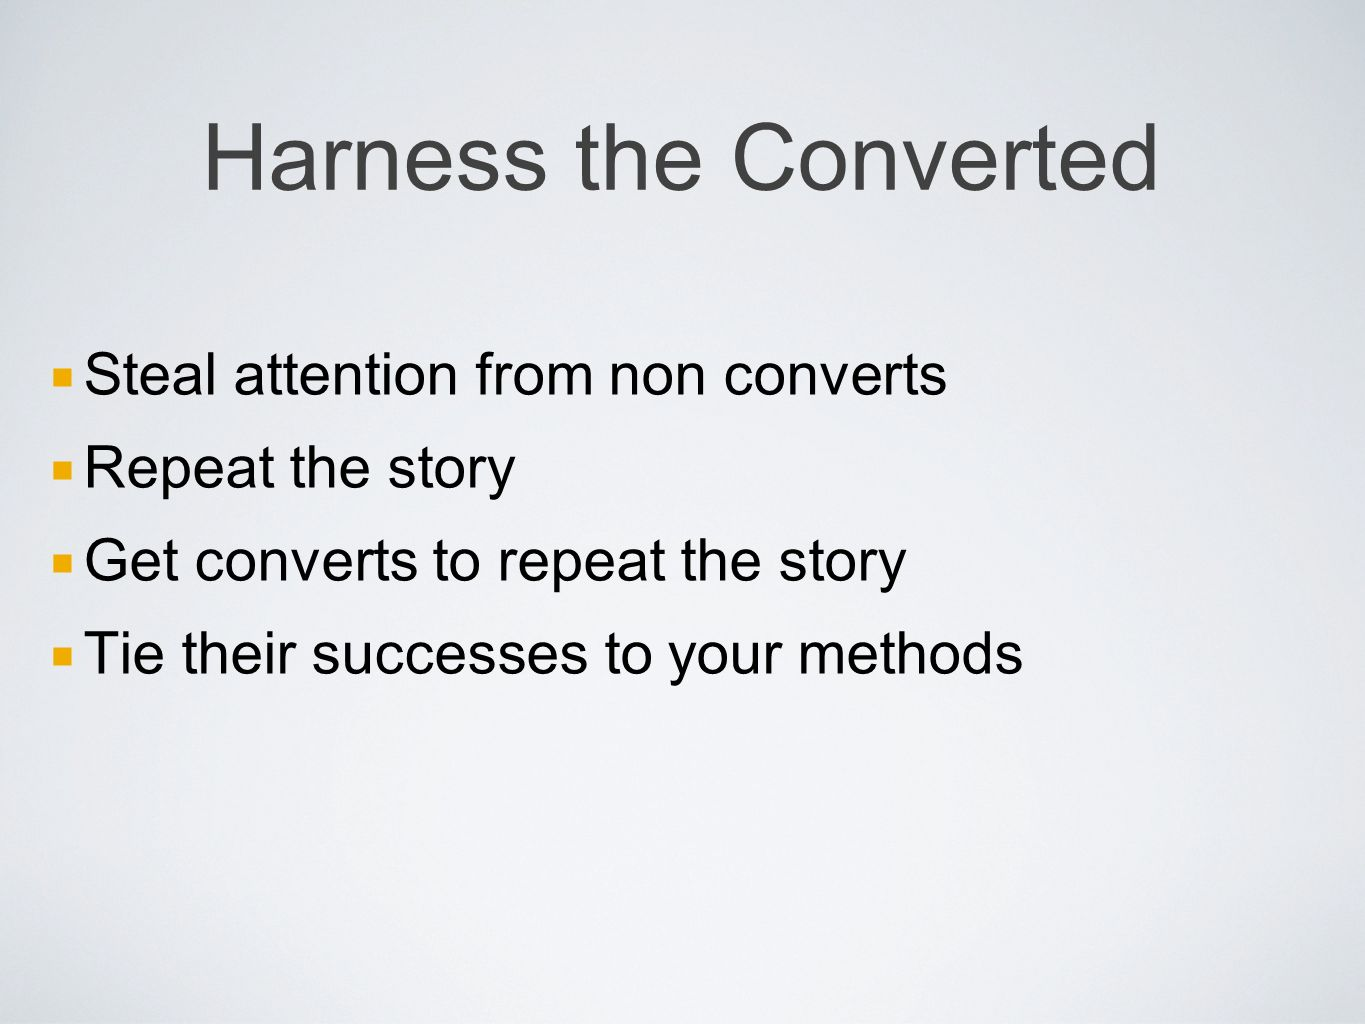 Harness the Converted Steal attention from non converts Repeat the story Get converts to repeat the story Tie their successes to your methods